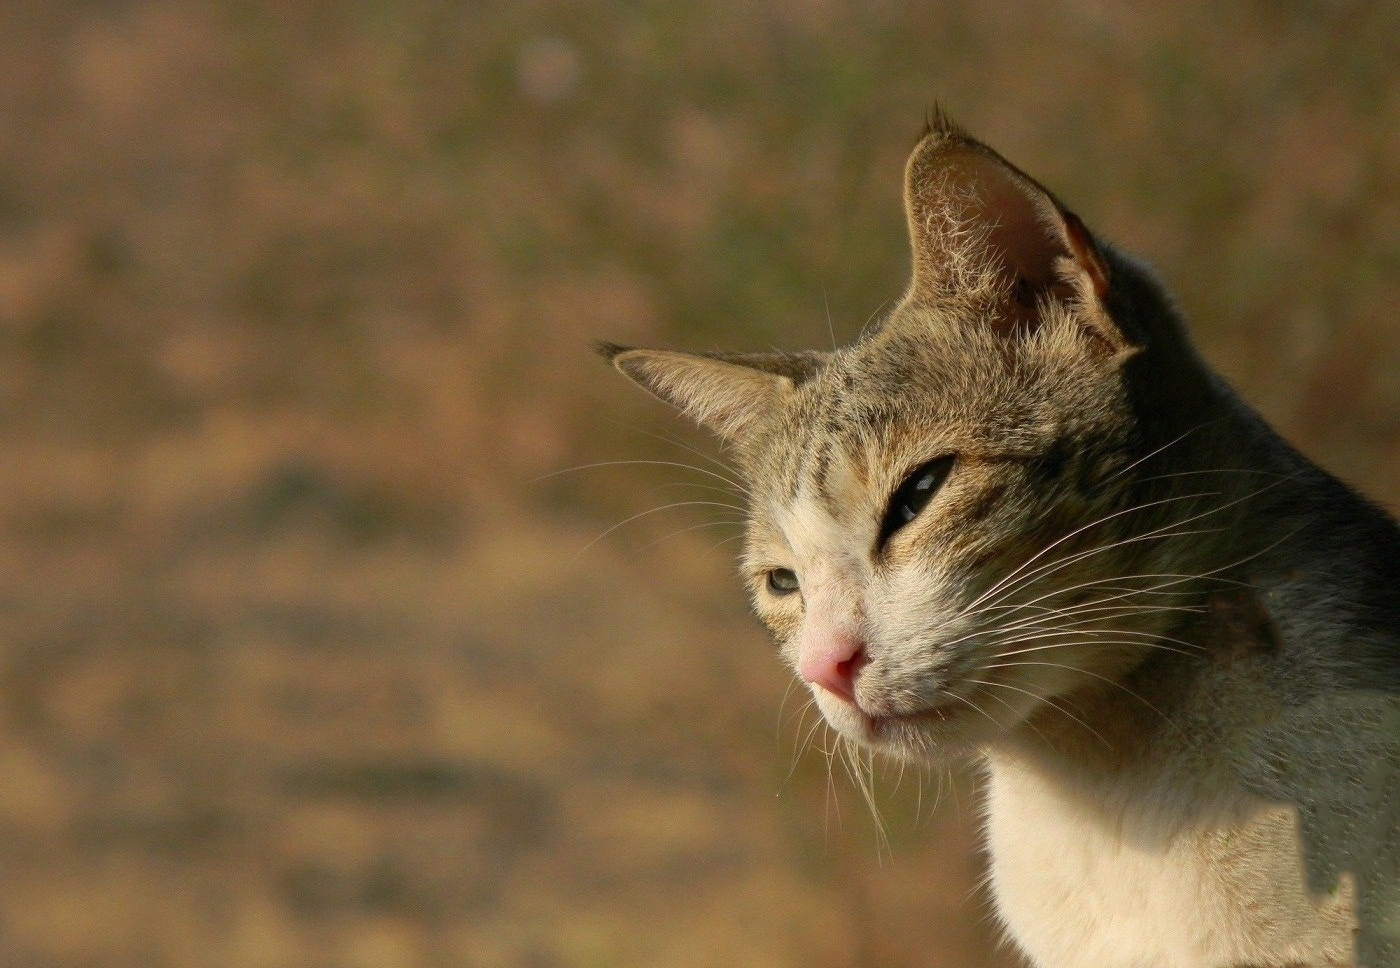 Photograph Pretty Kitty by Milind Mangare on 500px